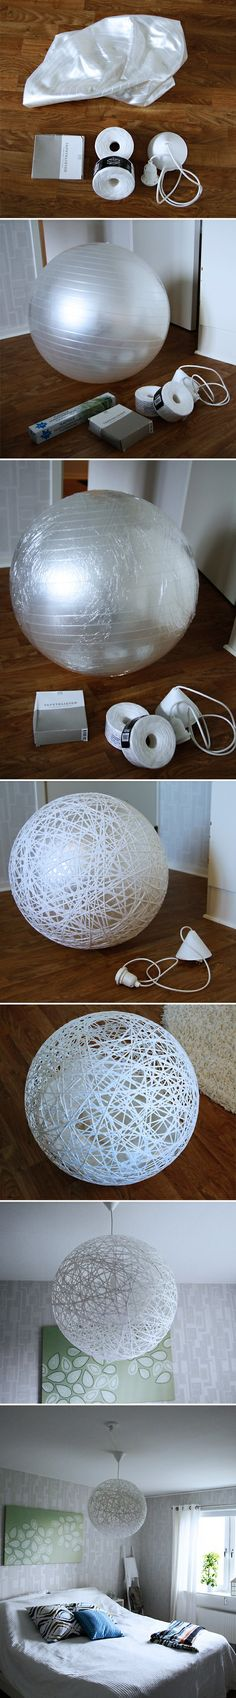 White lanterns - DIY